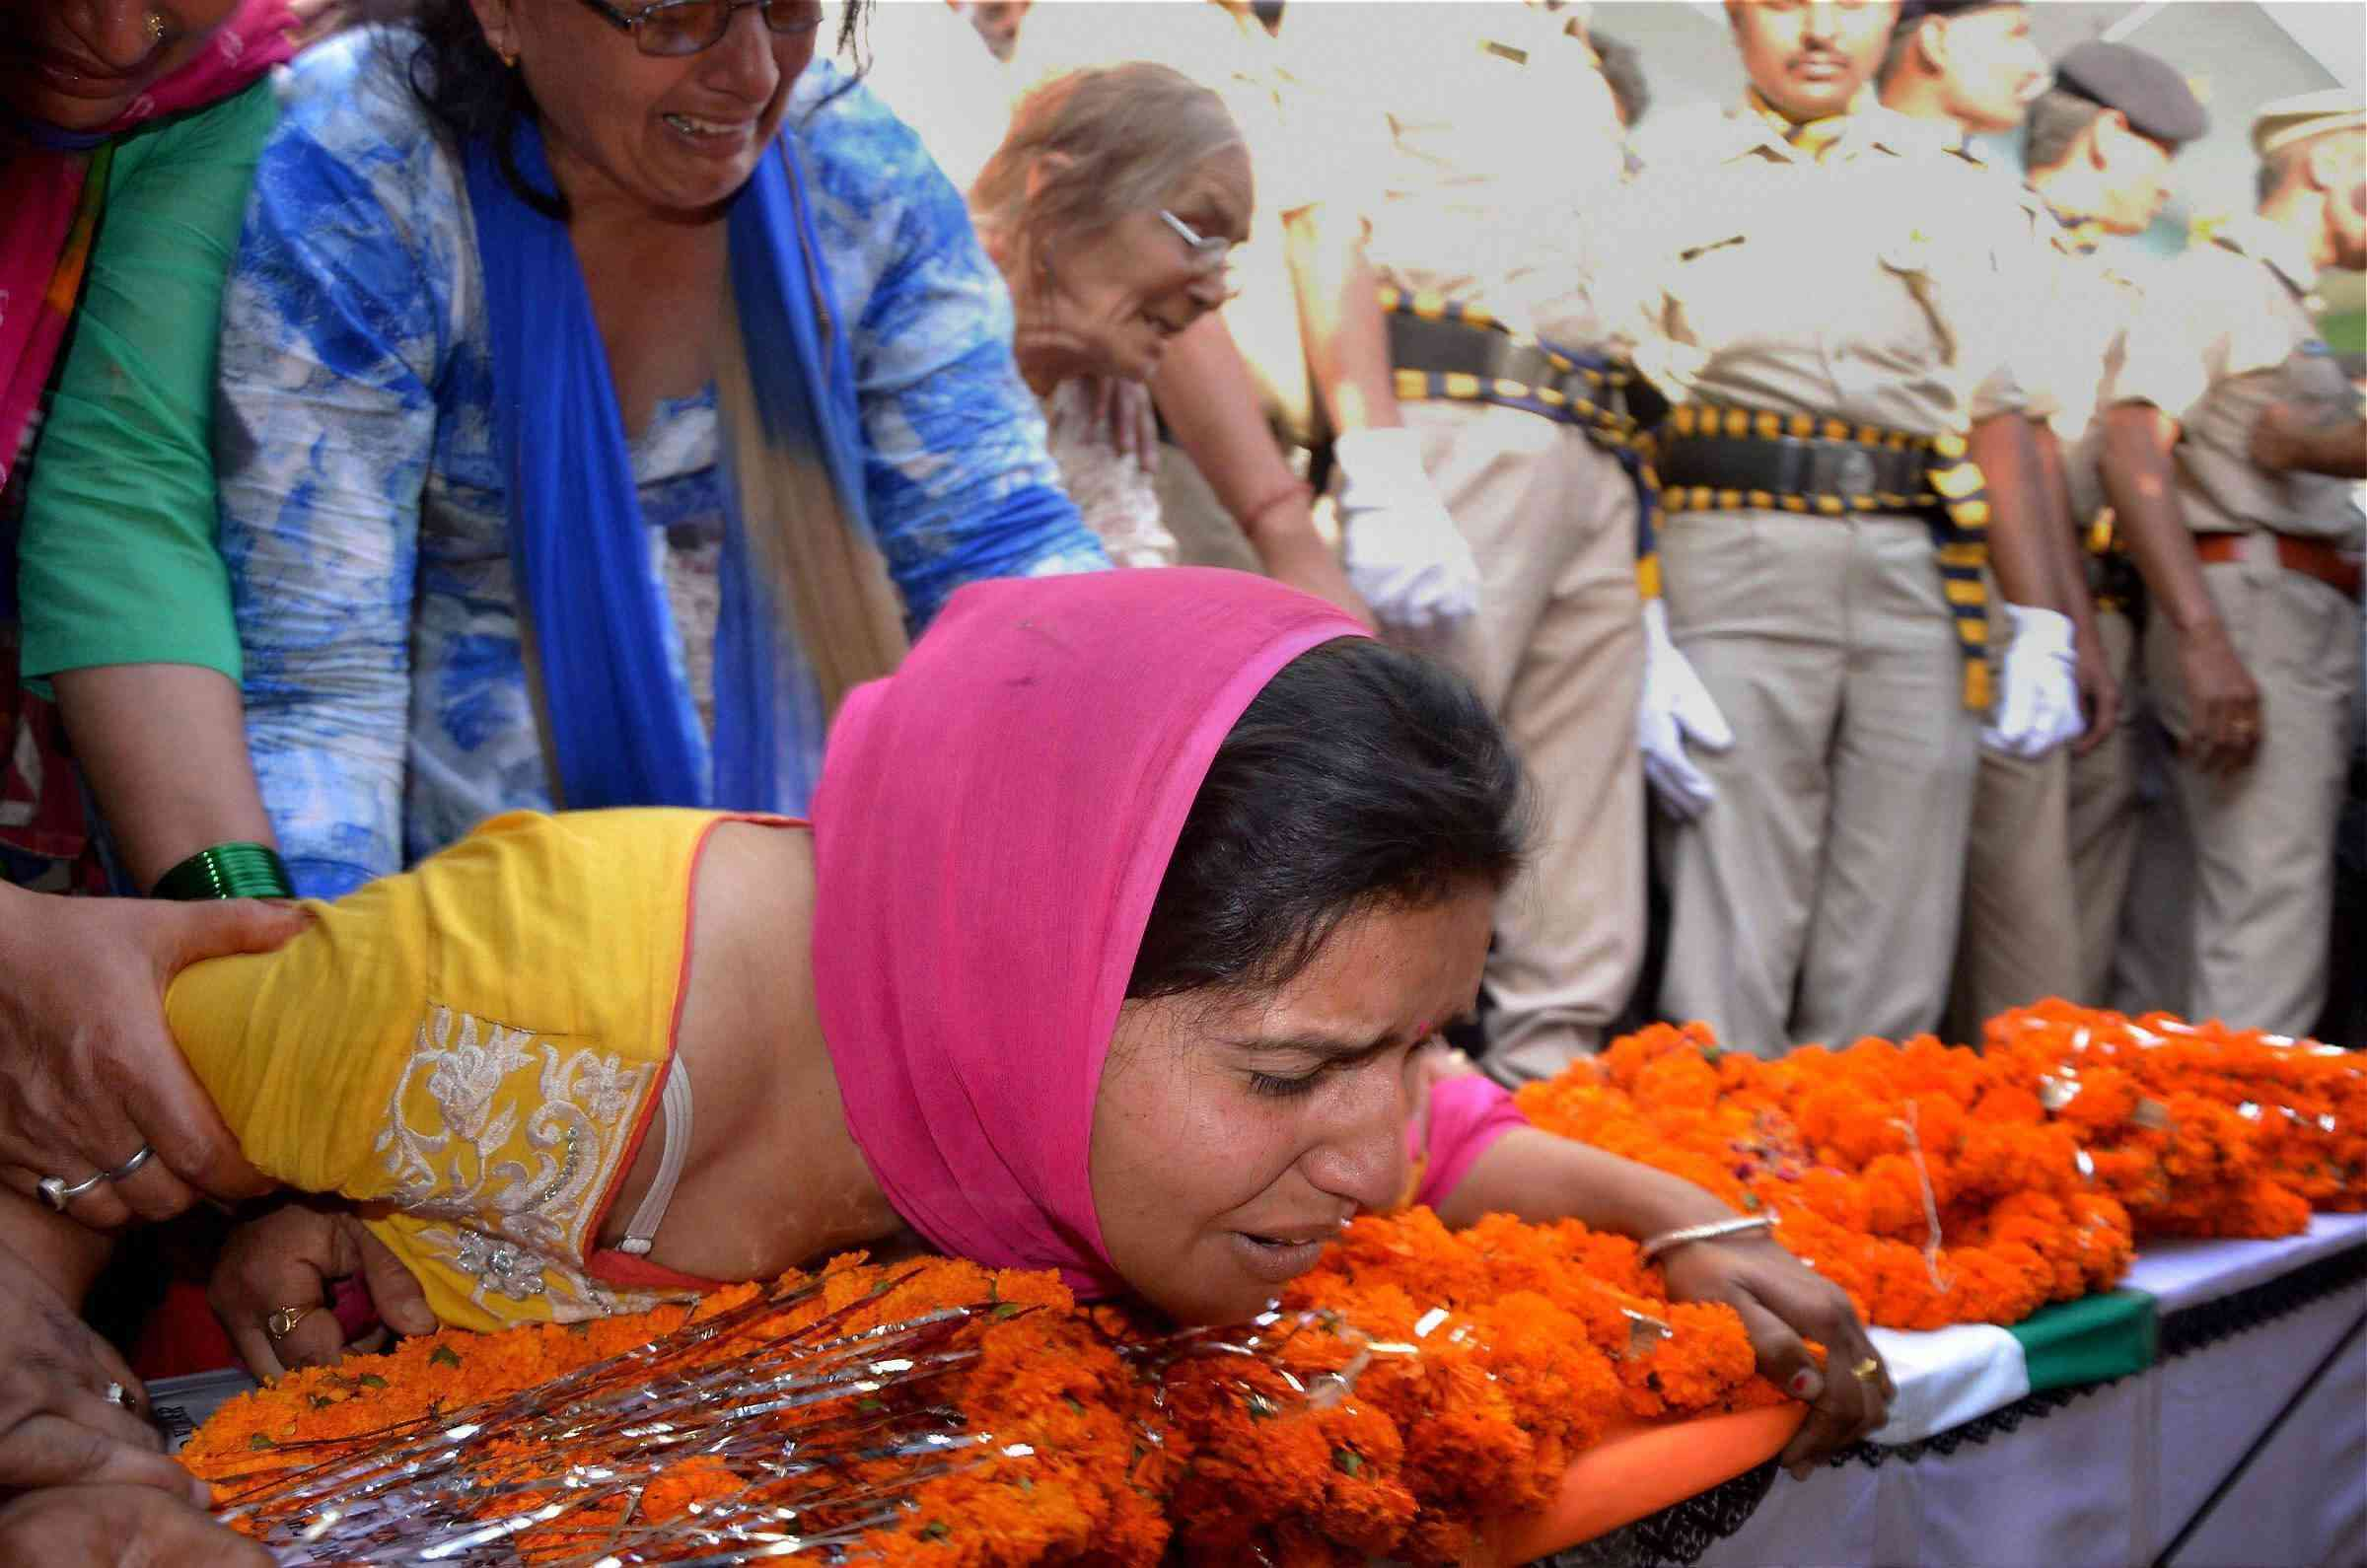 The wife of CRPF soldier Surender Thakur – who was killed in a Naxalite attack in Sukma, Chhattisgarh – cries during his funeral at his village in Himachal Pradesh in April 2017. (Photo credit: PTI).